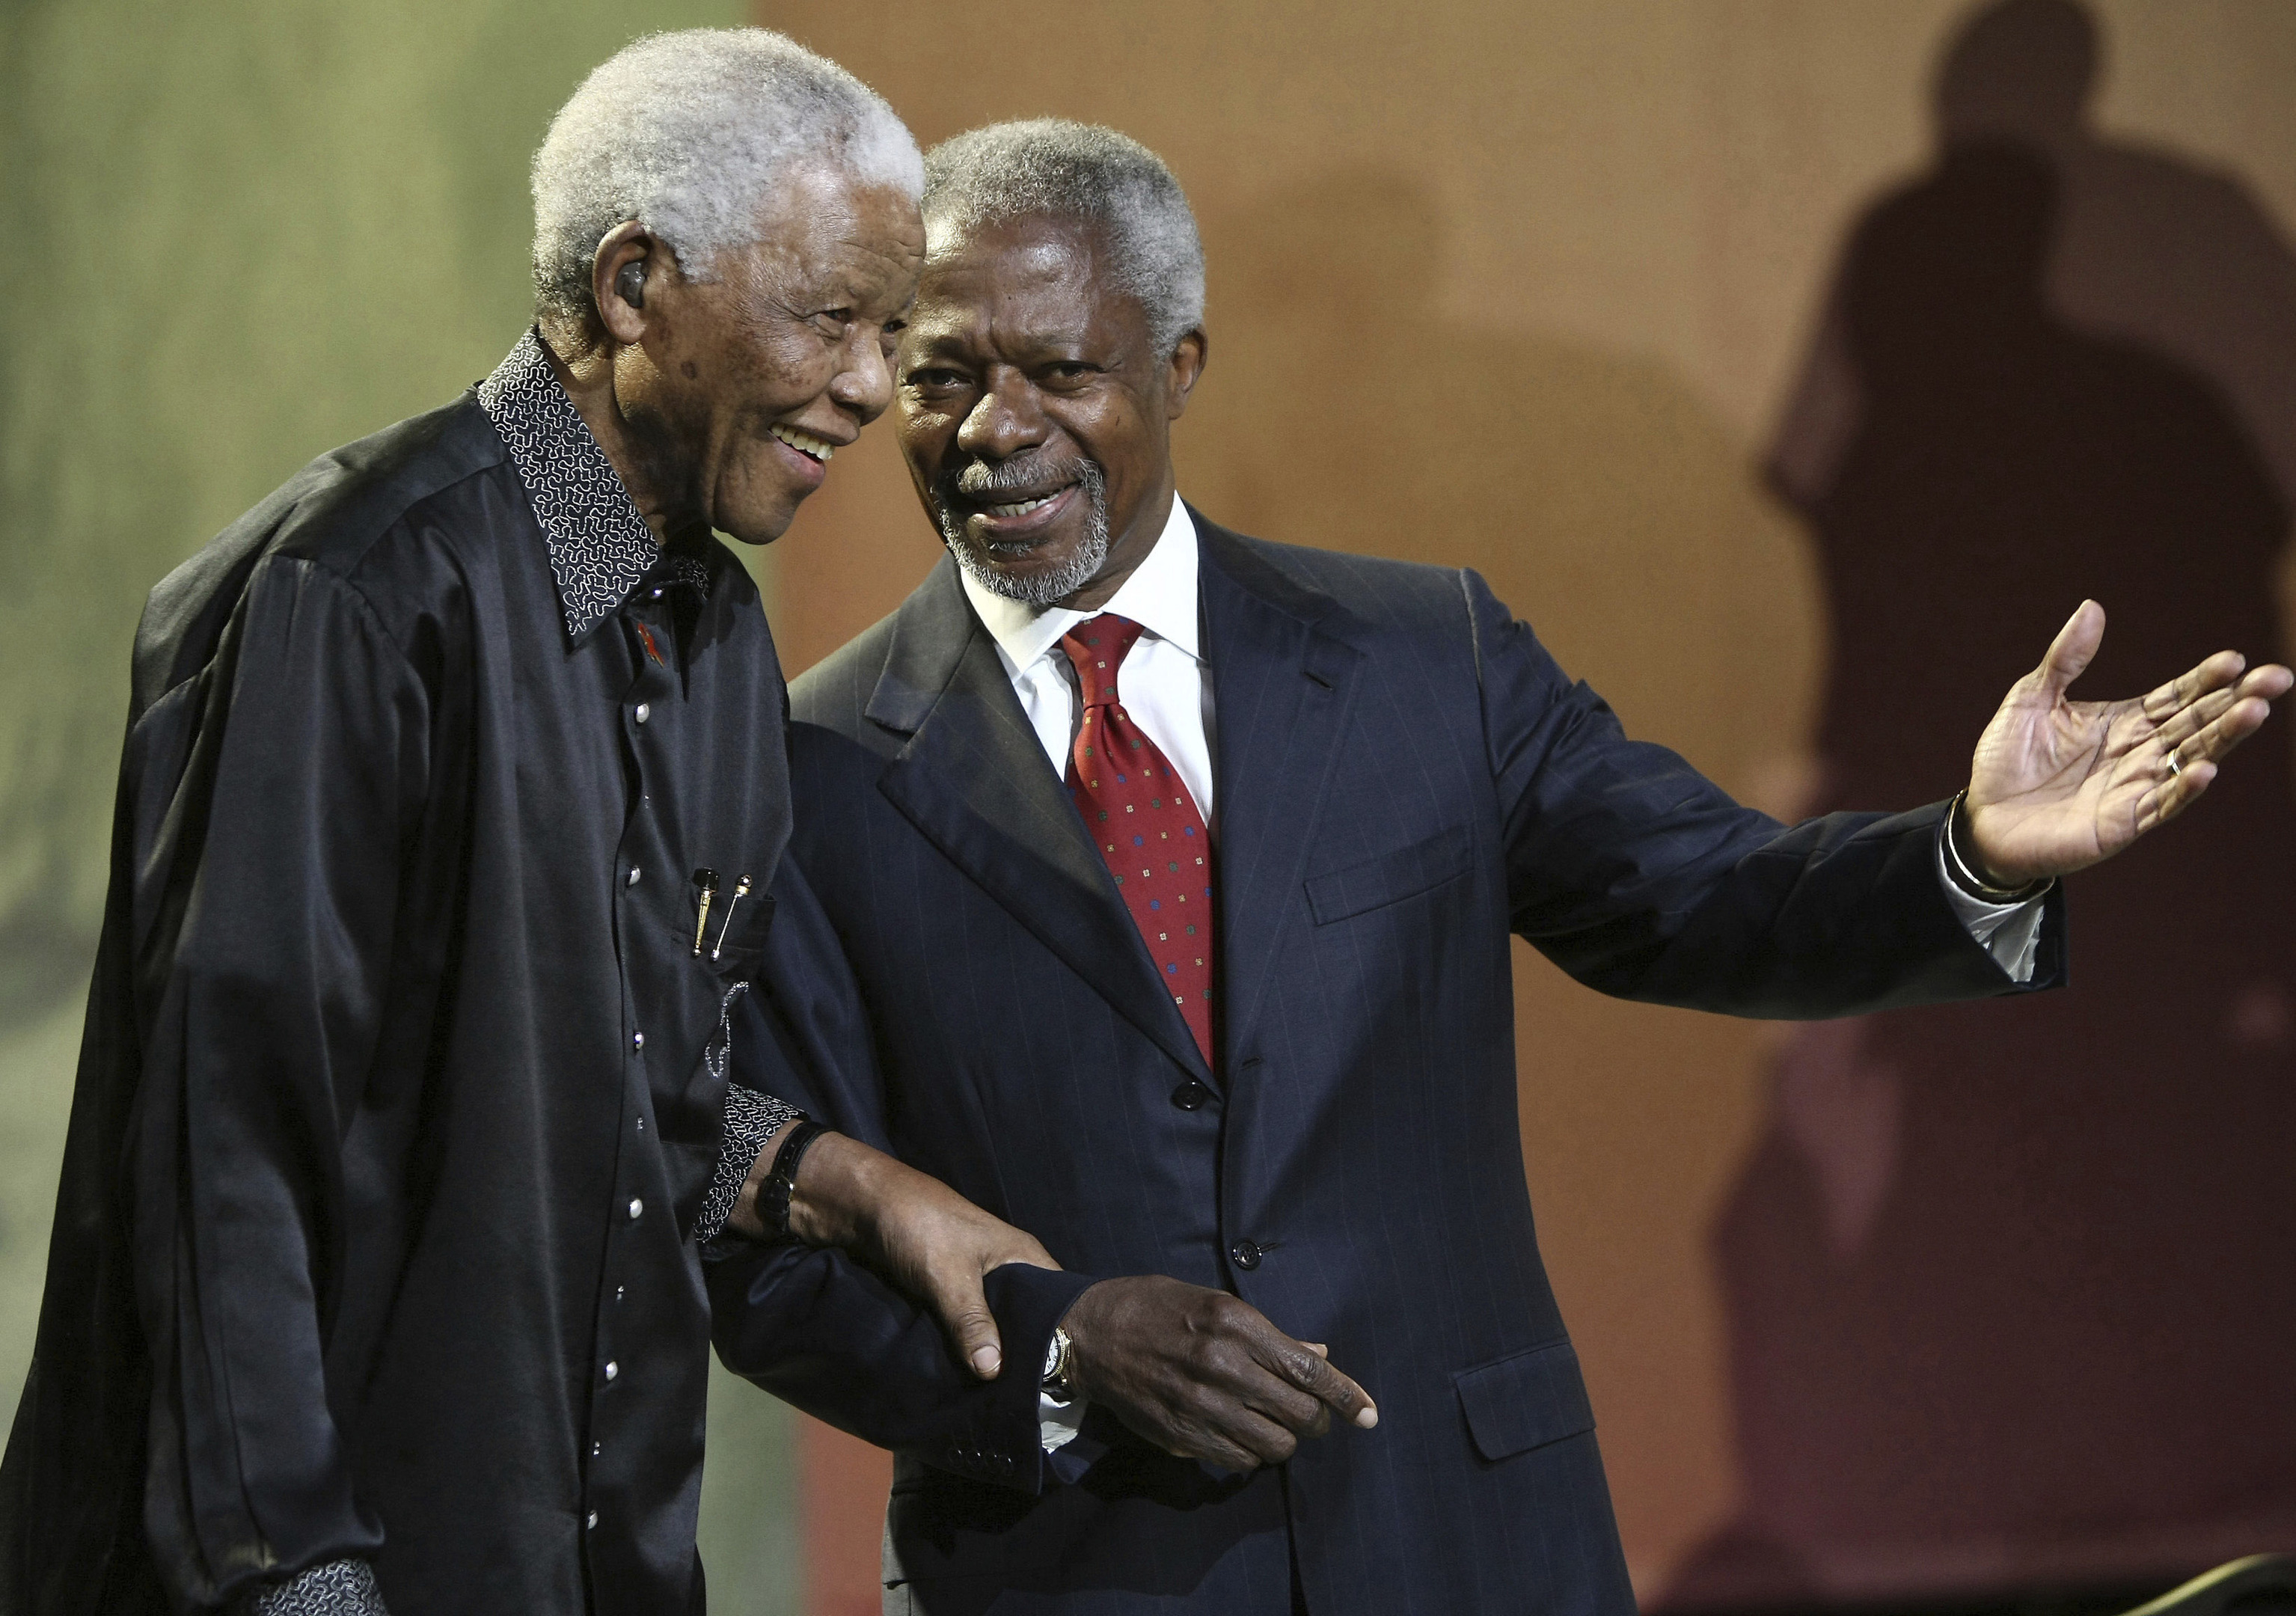 Nelson Mandela and former United Nations Secretary General Kofi Annan arrive together at the 5th Nelson Mandela Annual Lecture (AP Photo, File)